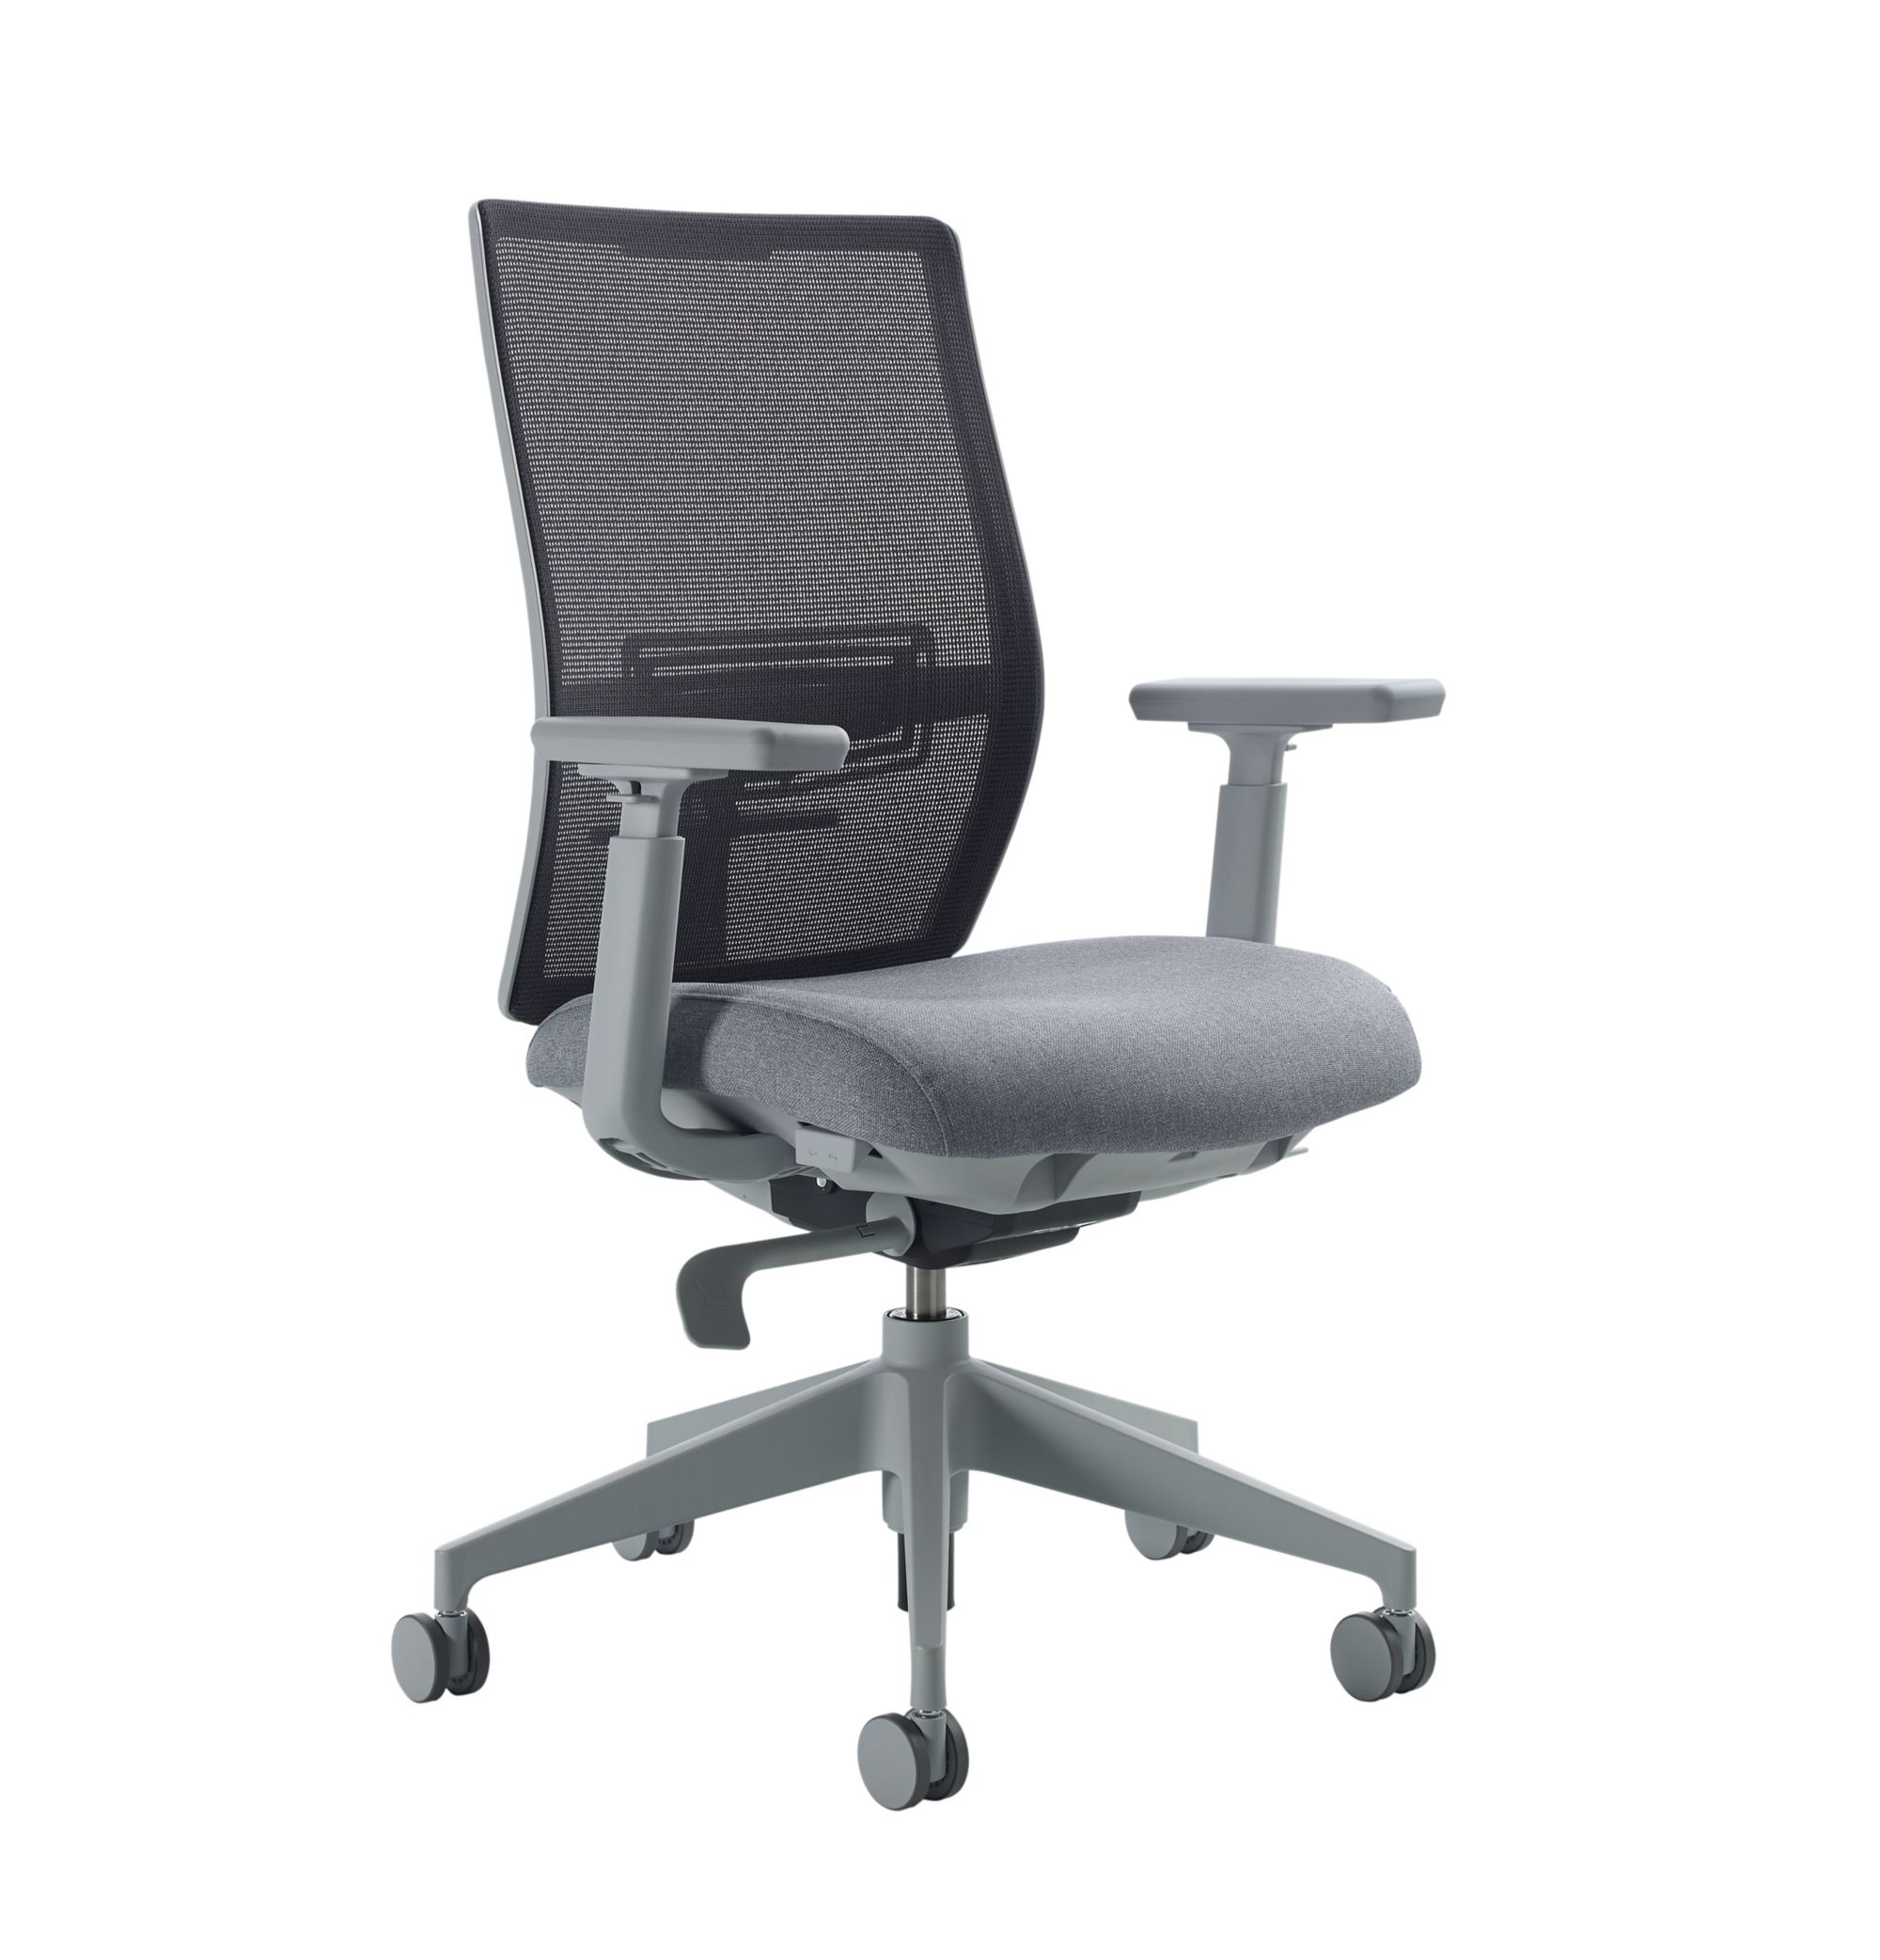 best affordable office chair 2018 simply bows and covers south wales seating interiors